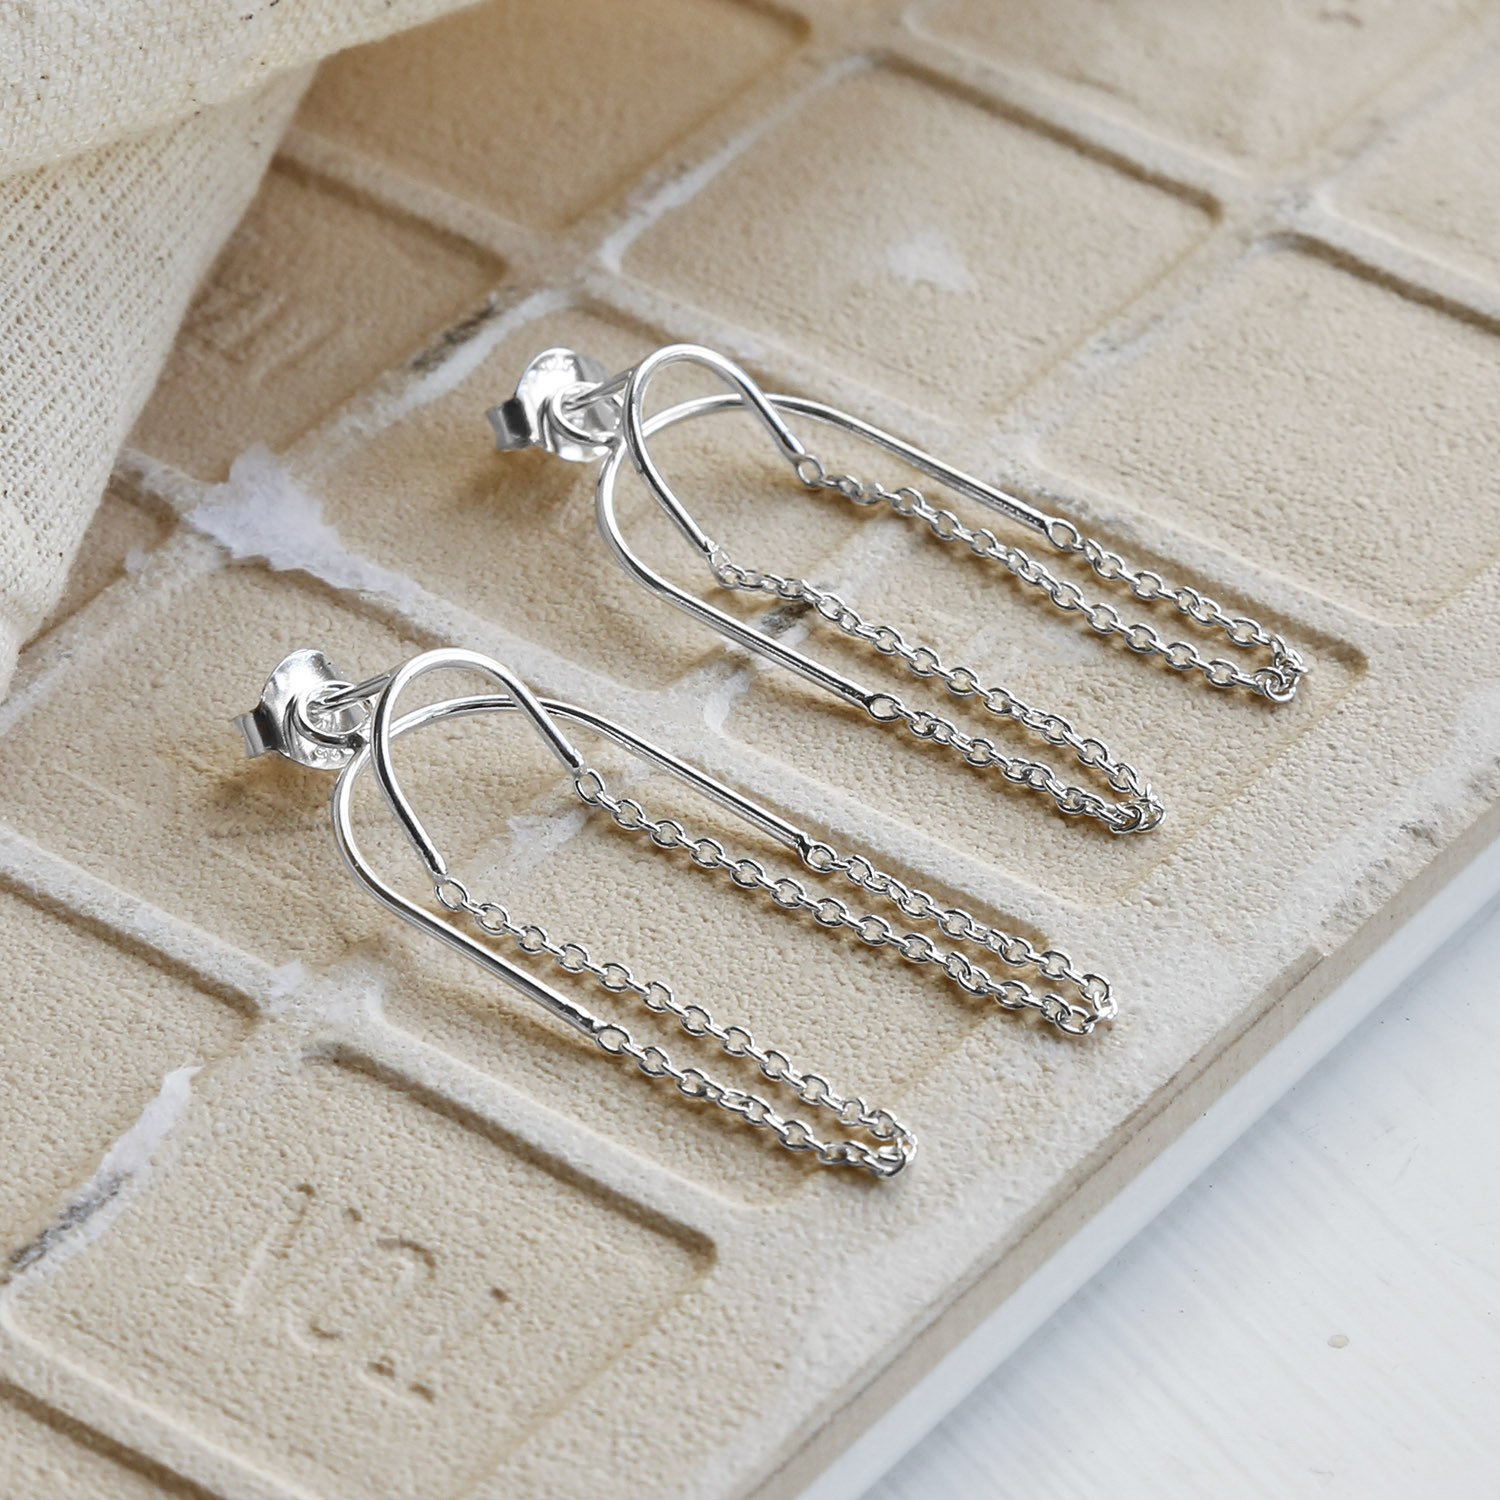 Two way chain Sterling Silver studs on Sandy tile background with canvas